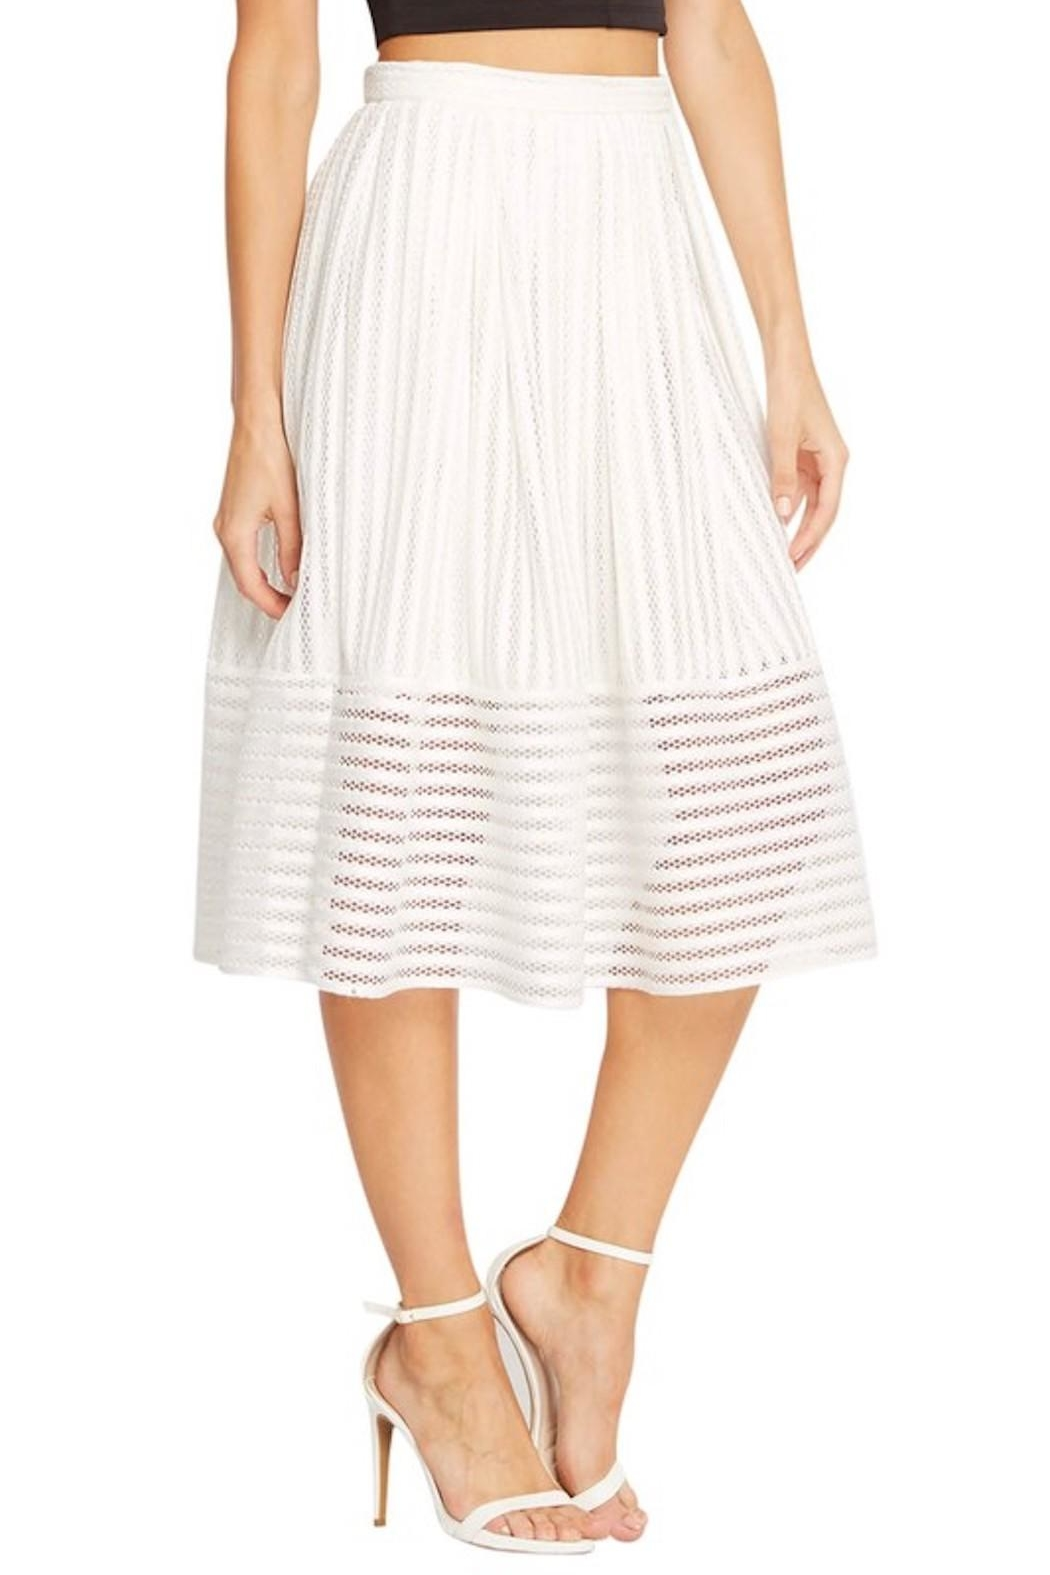 Soprano A-Line White Skirt - Side Cropped Image